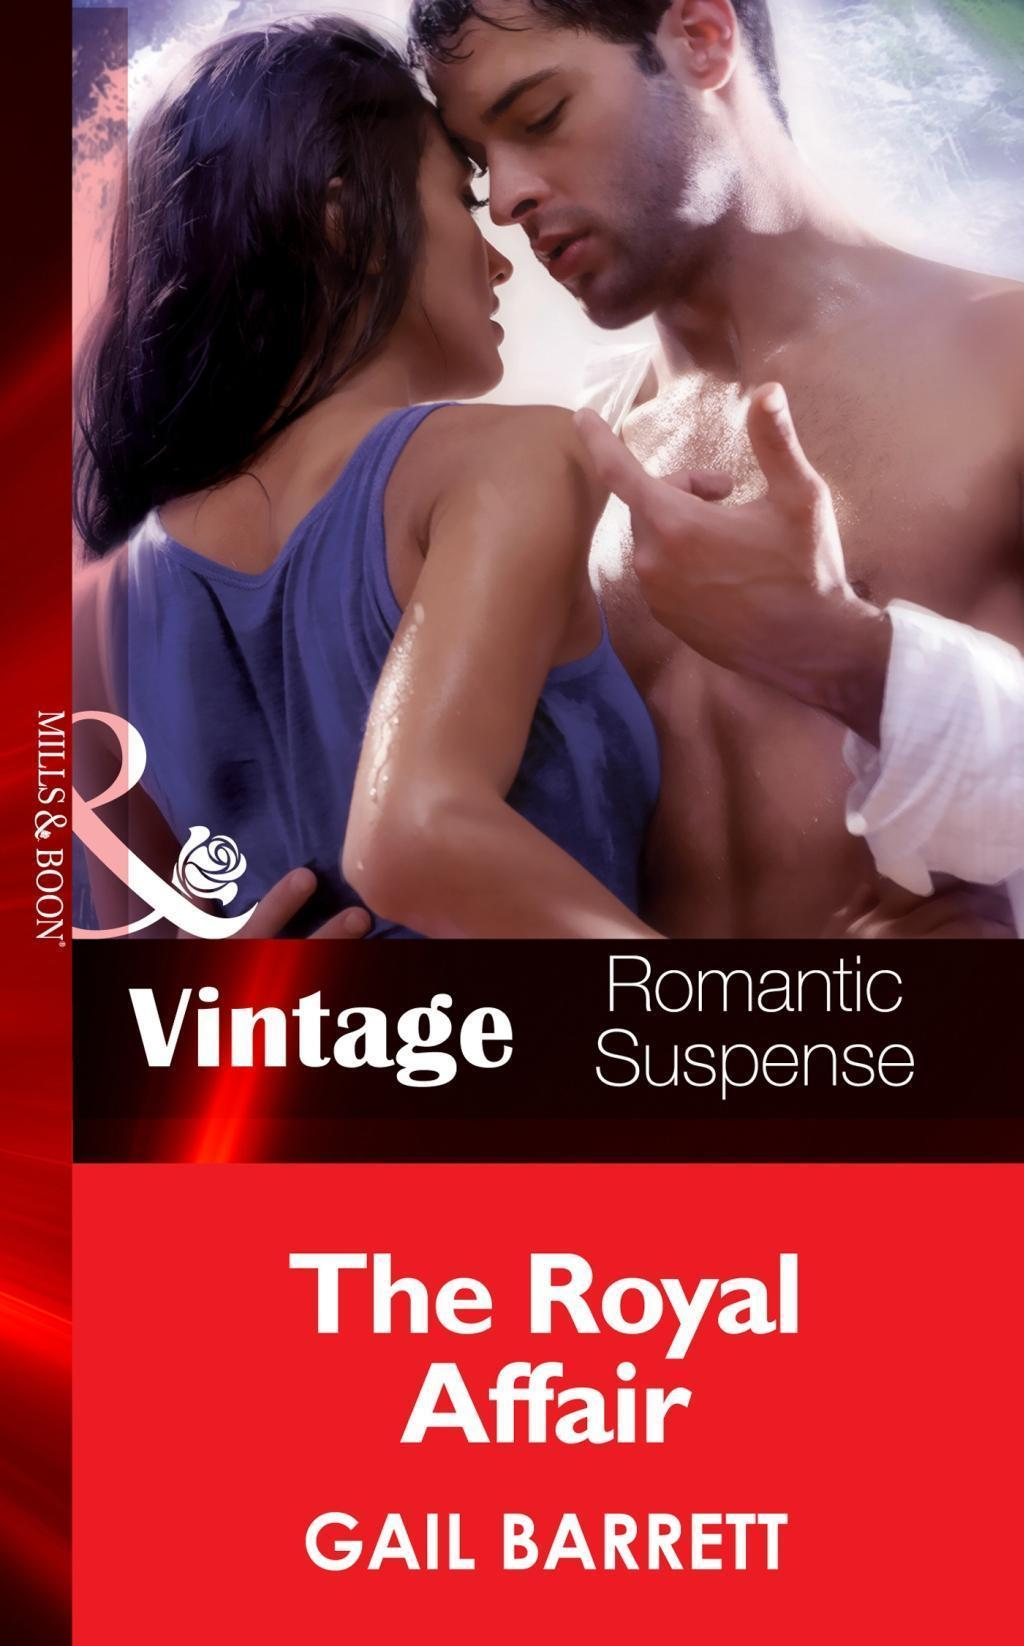 The Royal Affair (Mills & Boon Vintage Romantic Suspense) (The Crusaders, Book 3)